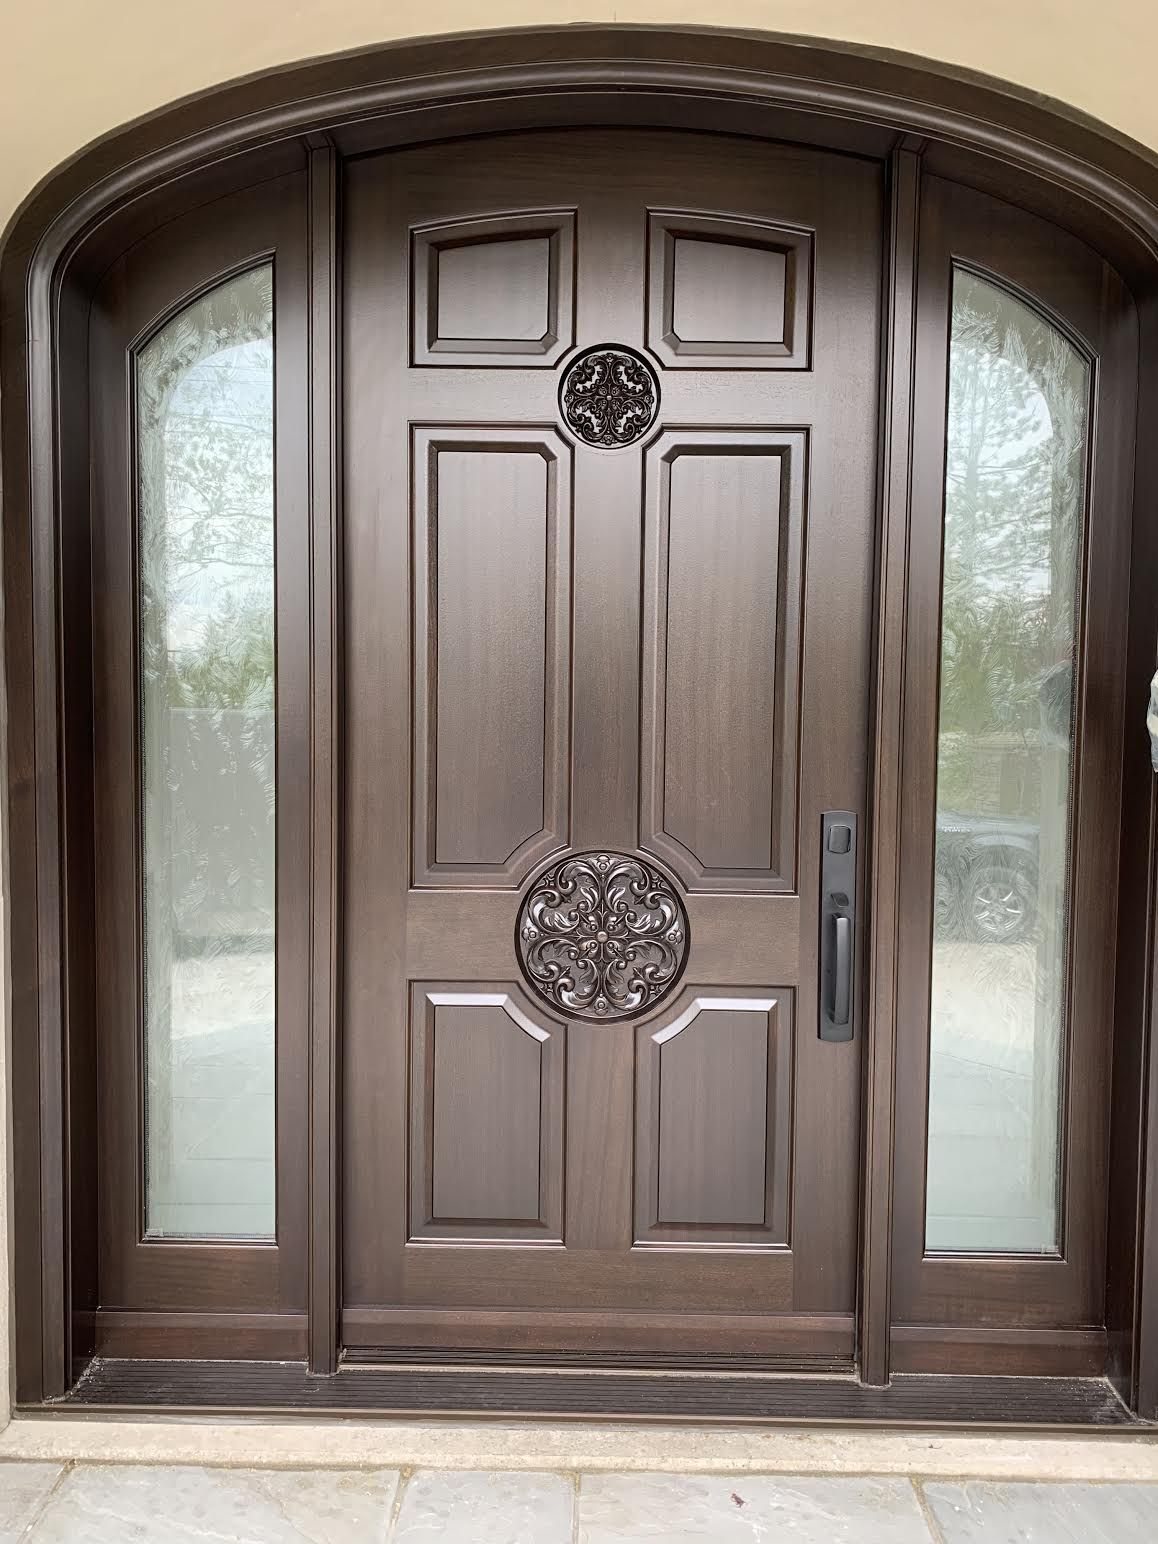 Stunning Custommade Solidmahogany Amberwooddoors Front Door With Sidelights 50 Gunstock Stai Single Door Design Main Entrance Door Design Door Gate Design